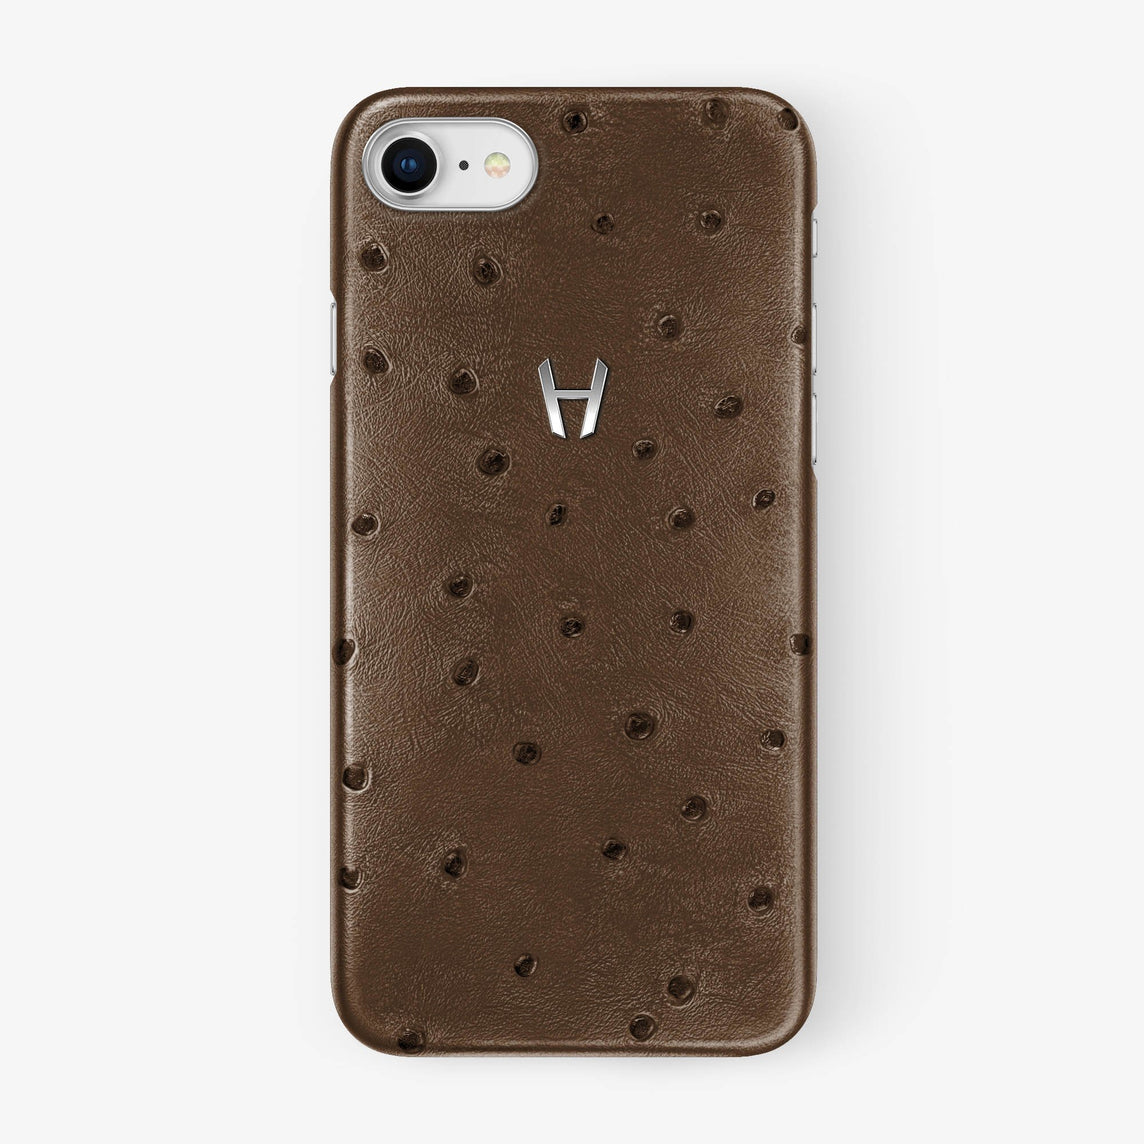 Tobacco Ostrich iPhone Case for iPhone 7/8 finishing stainless steel - Hadoro Luxury Cases